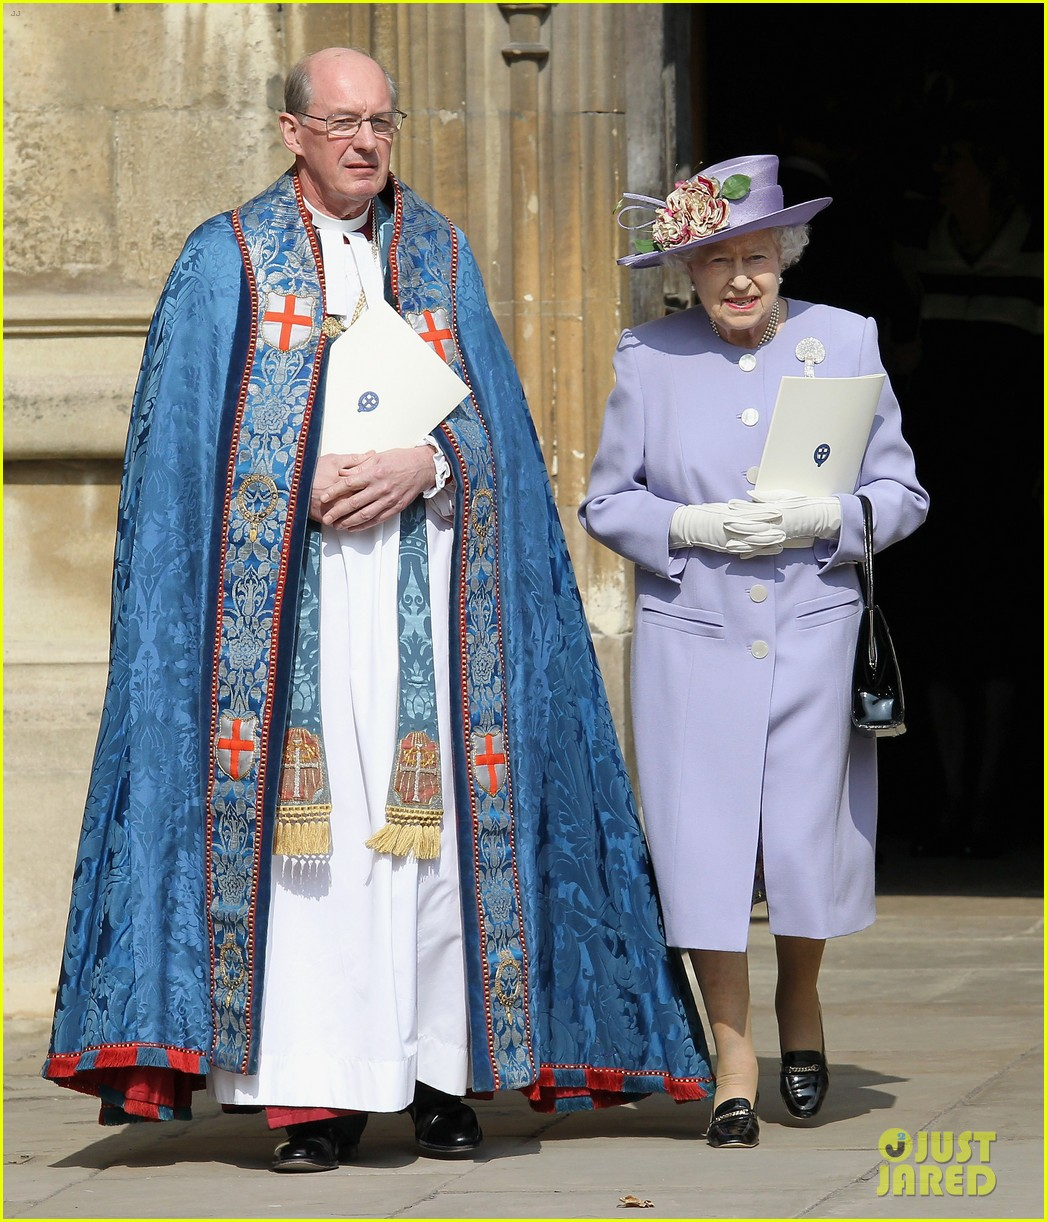 Full Sized Photo Of Queen Elizabeth Prince Harry Church